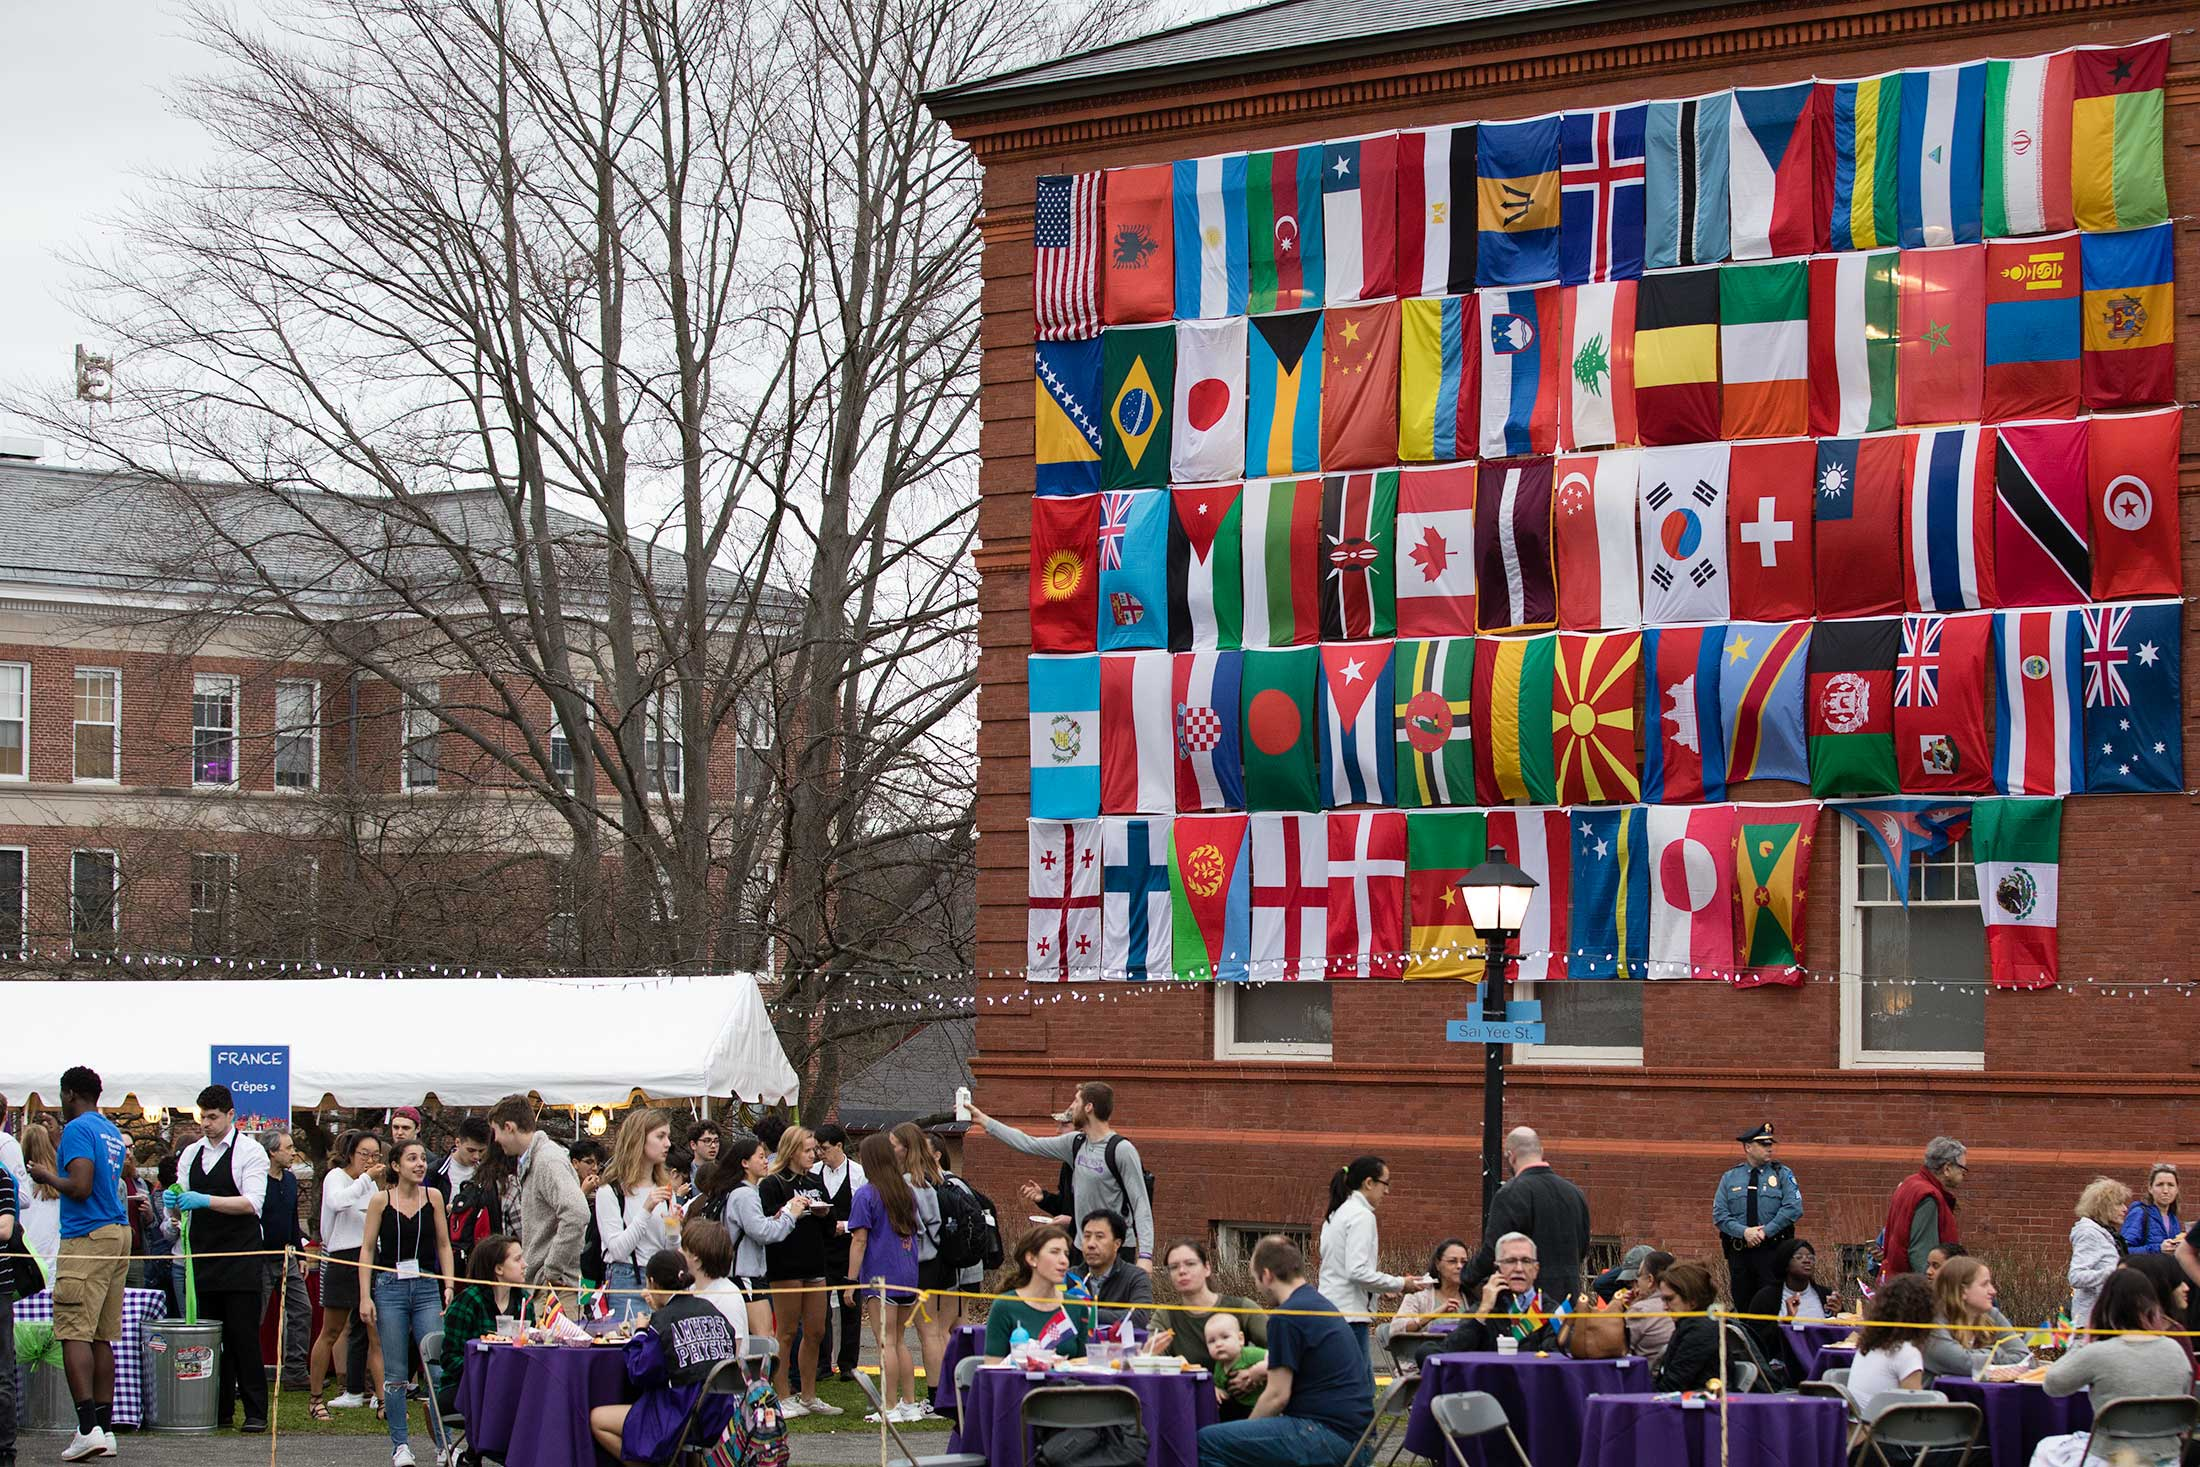 Flags from around the world are showcased at the City Streets celebration at Amherst College